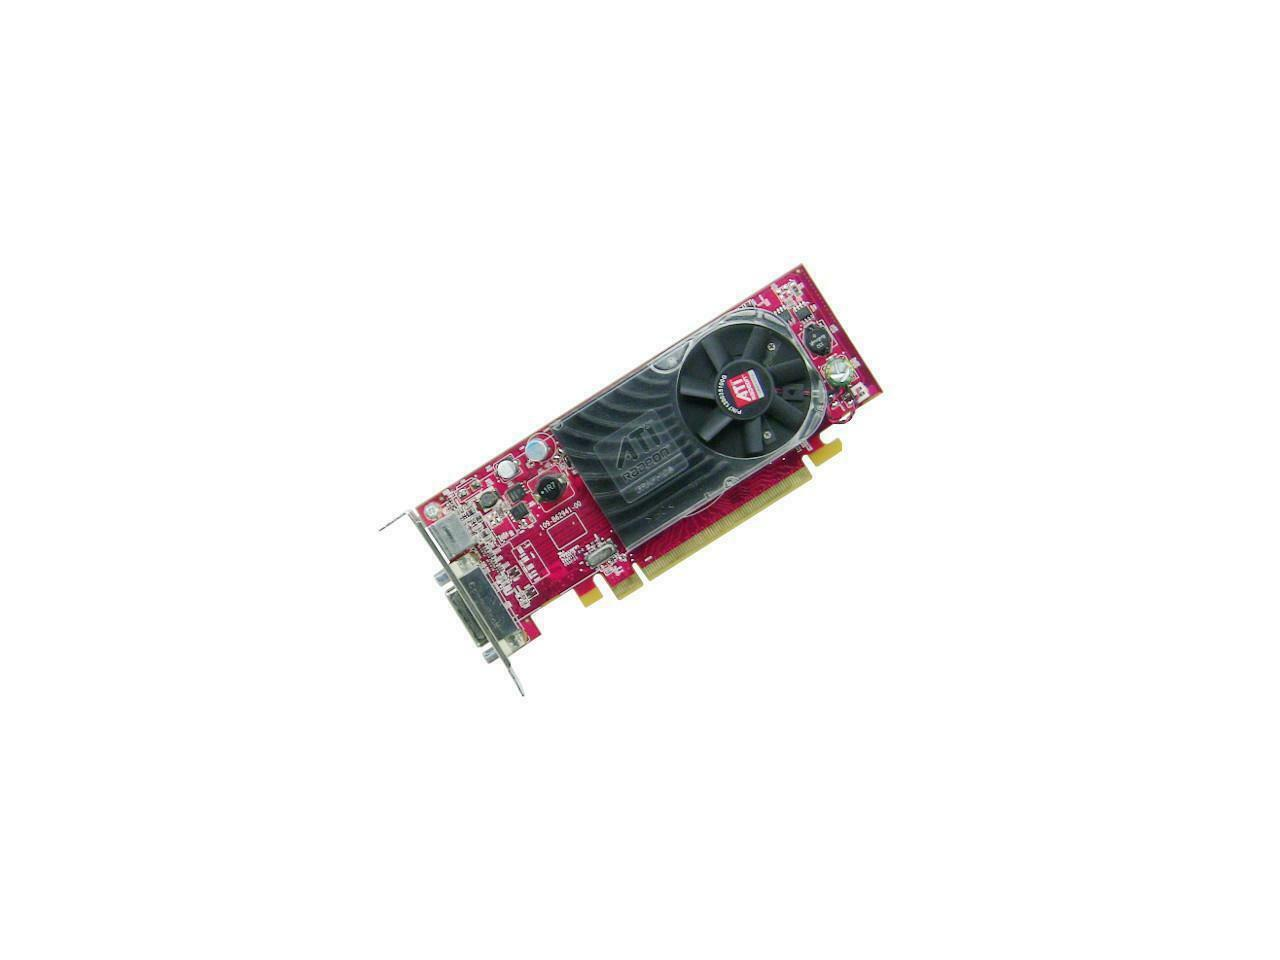 Dell Y103D ATI Radeon HD 3450 256MB DDR2 PCIe Low Profile Graphics Card Tested